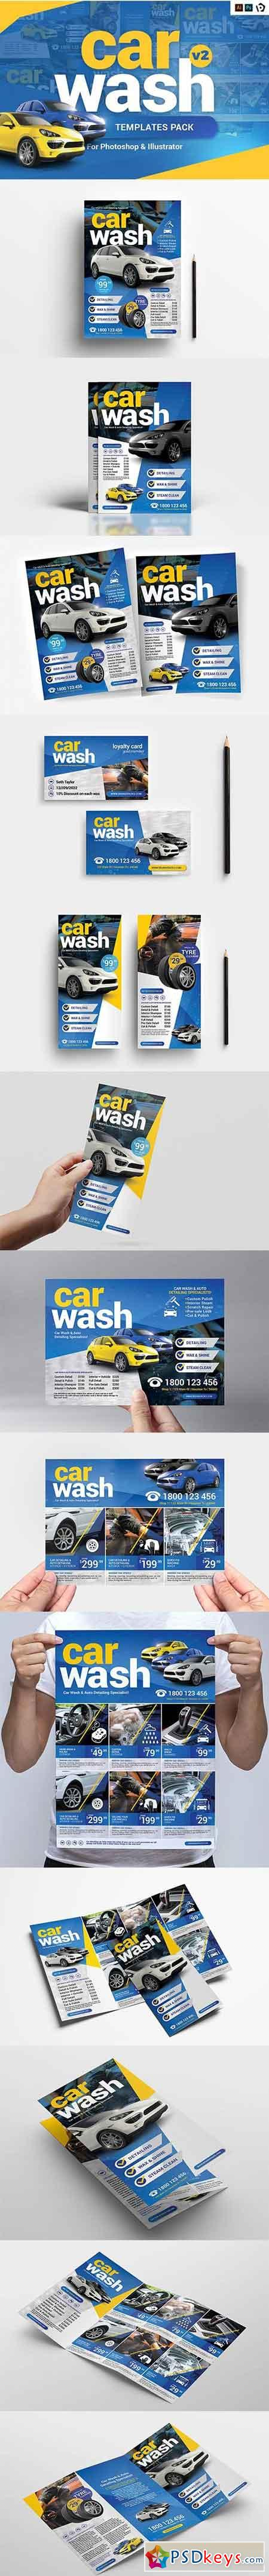 Car Wash Templates Pack Template 3195565